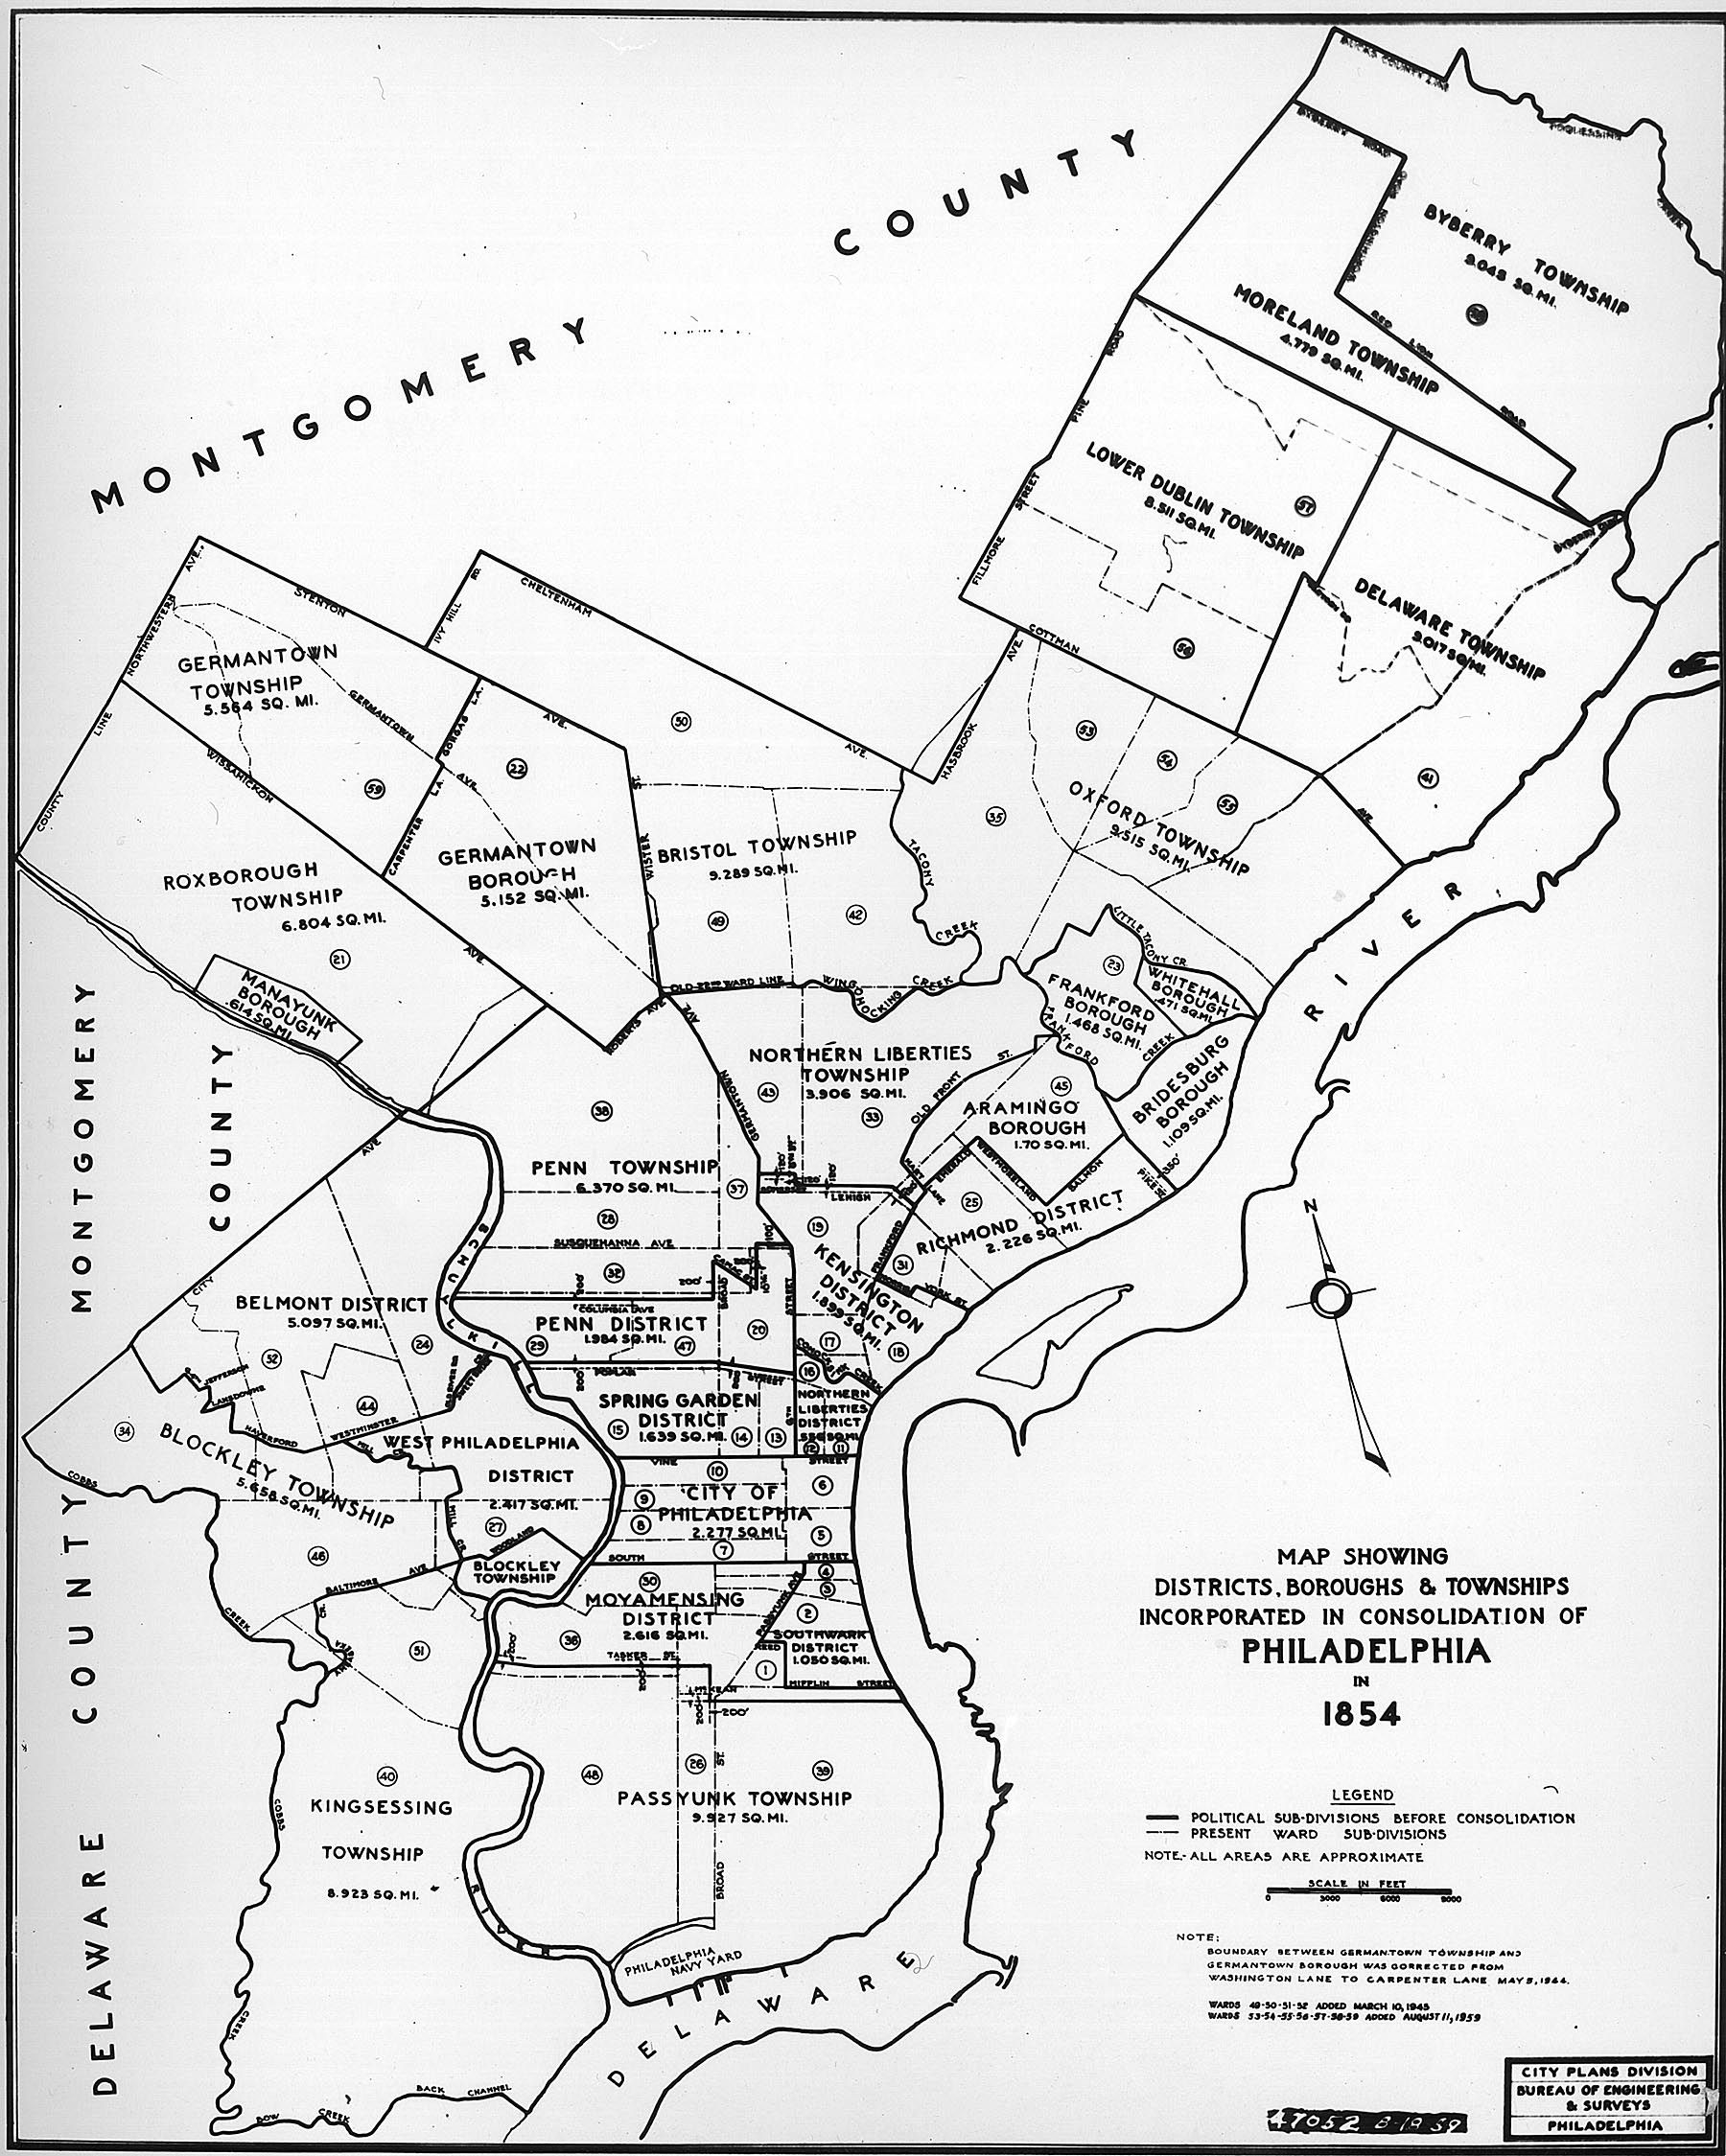 Philadelphia Township Map 1854 Map of Districts, Boroughs, & Townships incorporated in